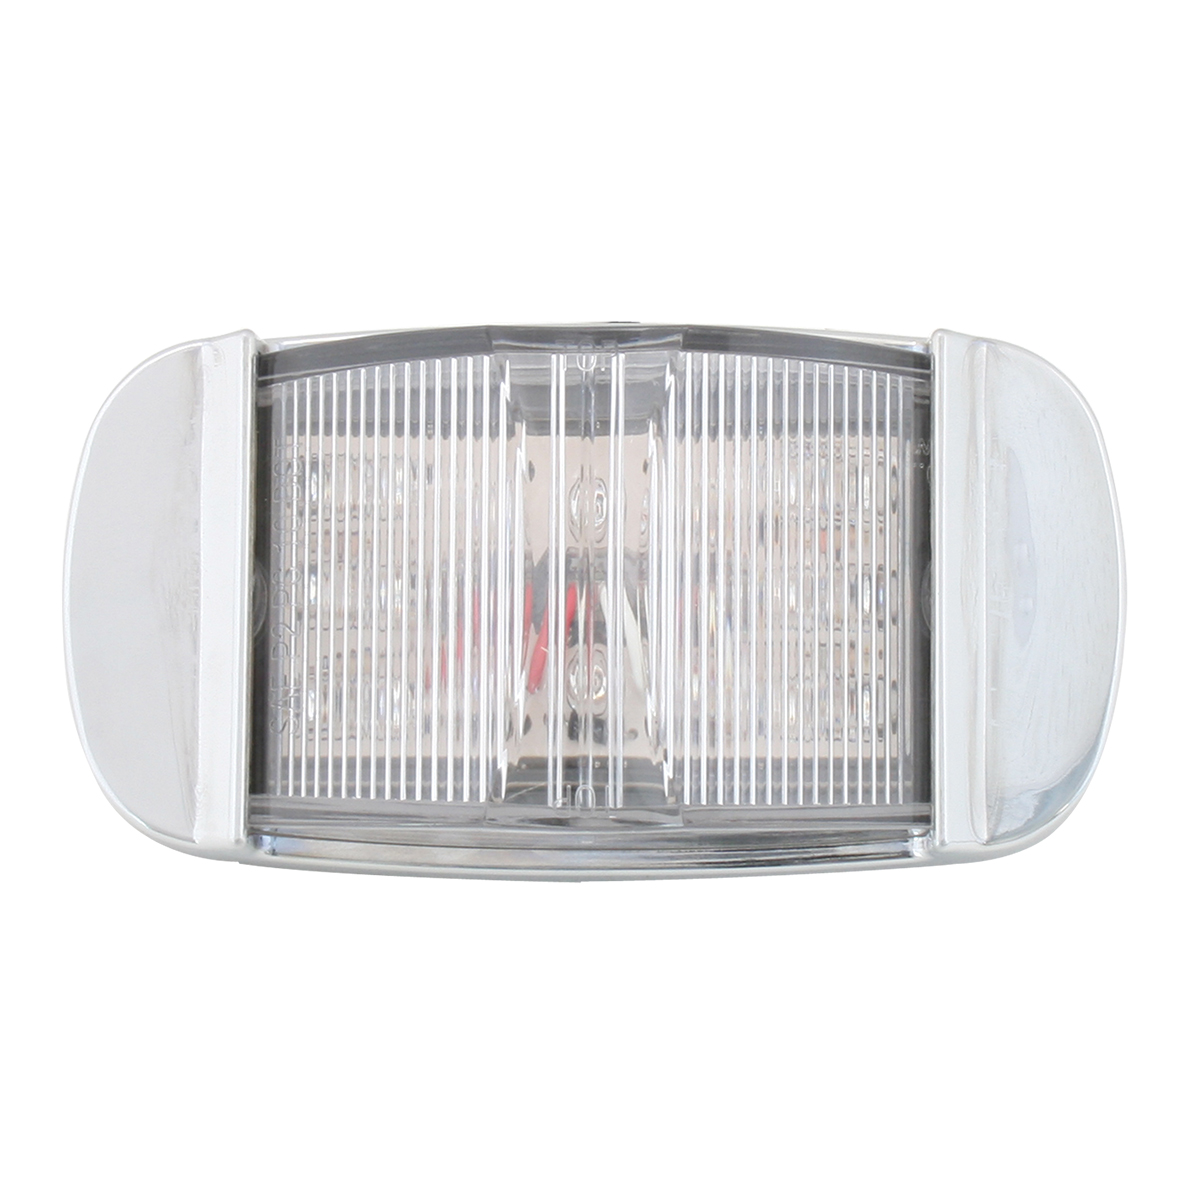 Grand General 76256 Red Rectangular Camel Back Wide Angle 14-LED Marker and Clearance Sealed Light with Chrome Bezel